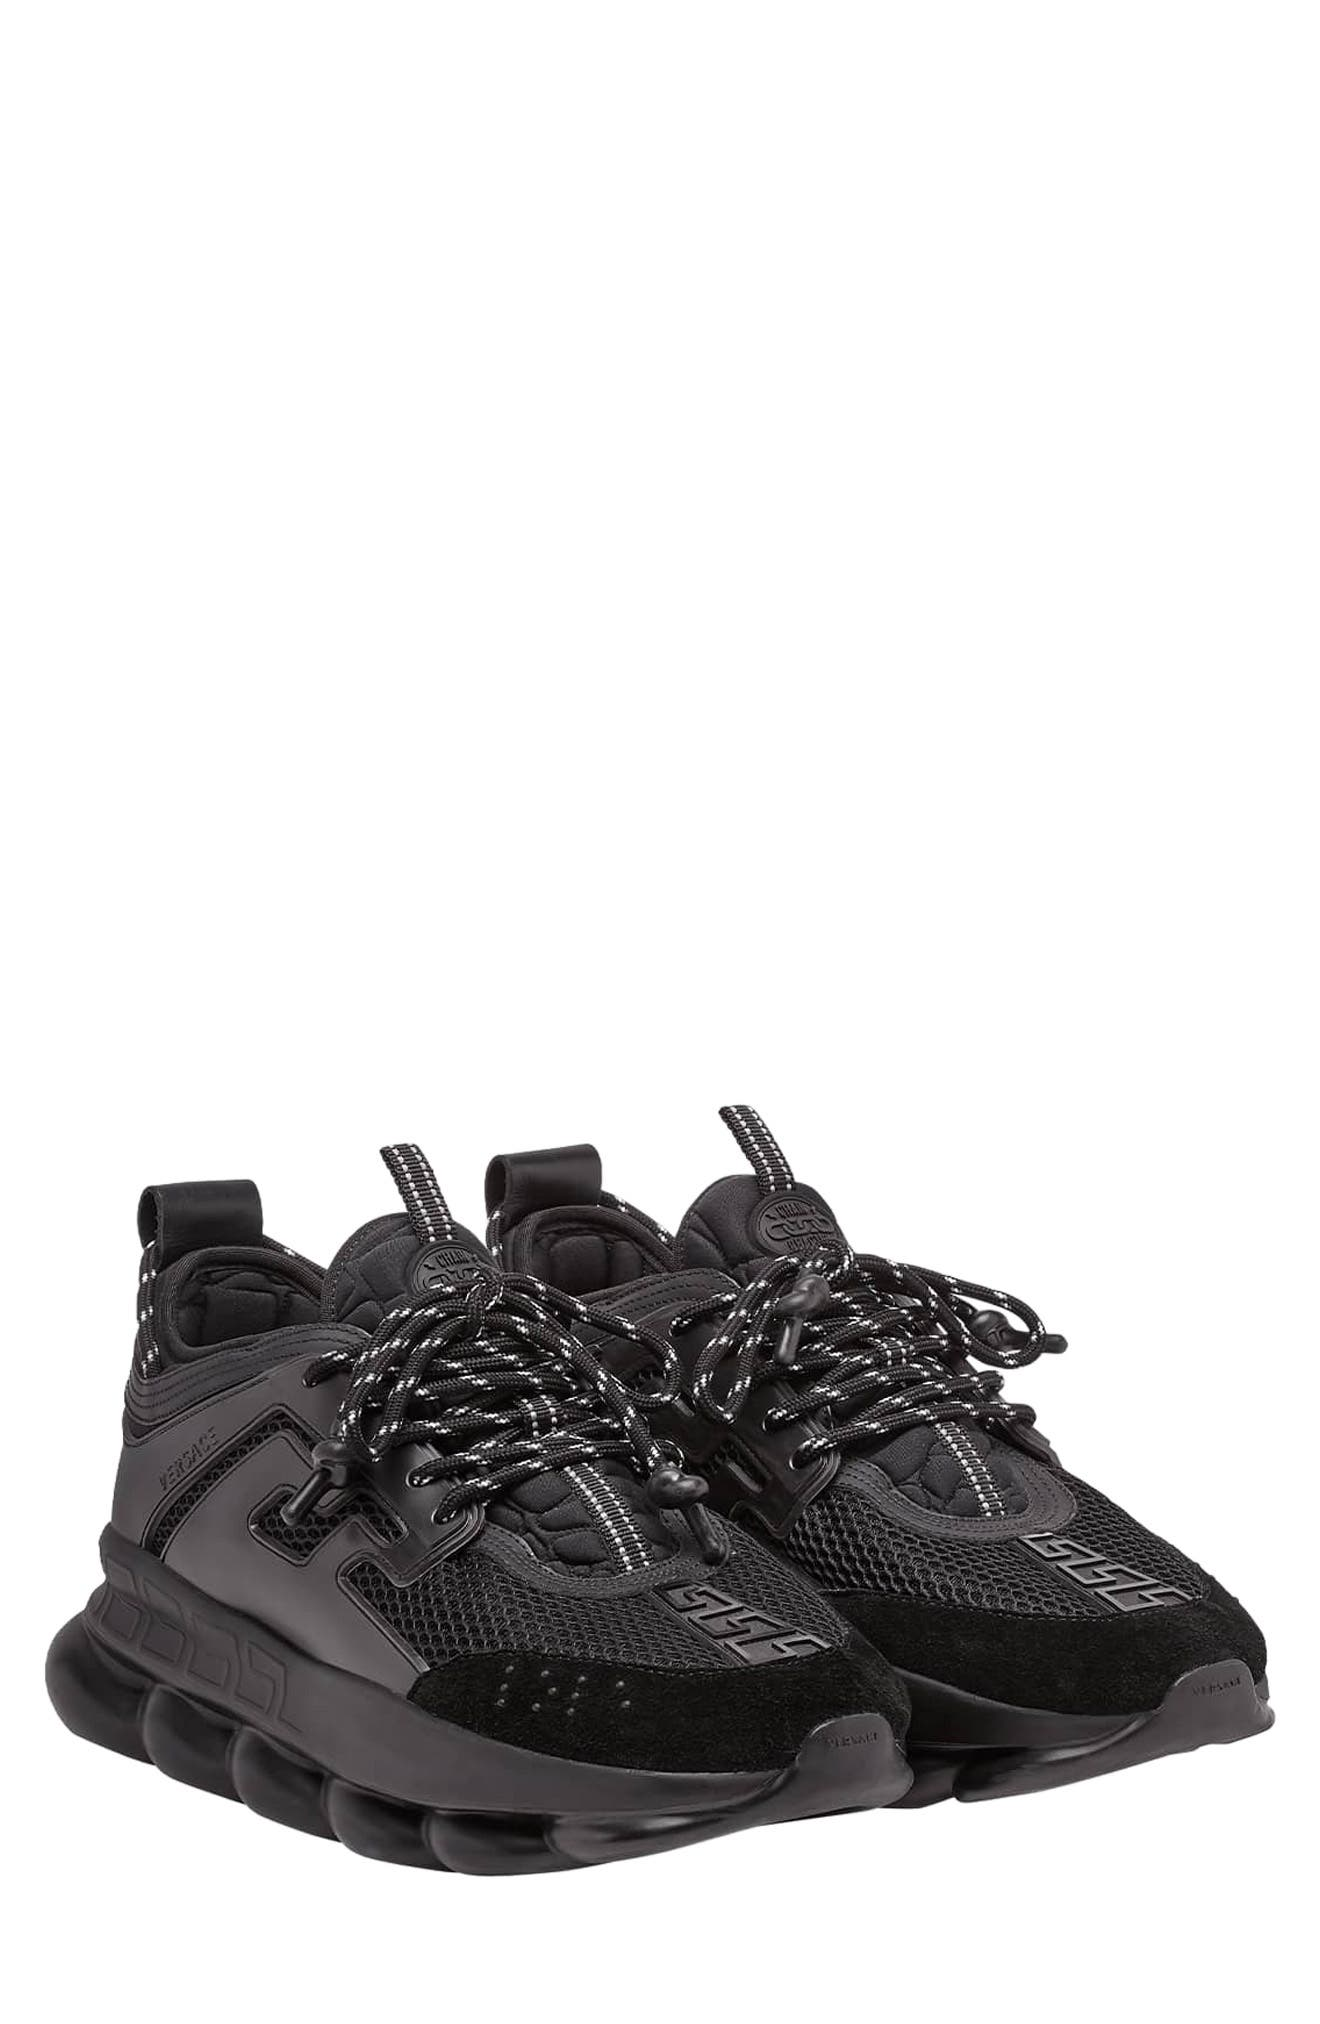 VERSACE FIRST LINE, Versace Chain Reaction Sneaker, Main thumbnail 1, color, NERO